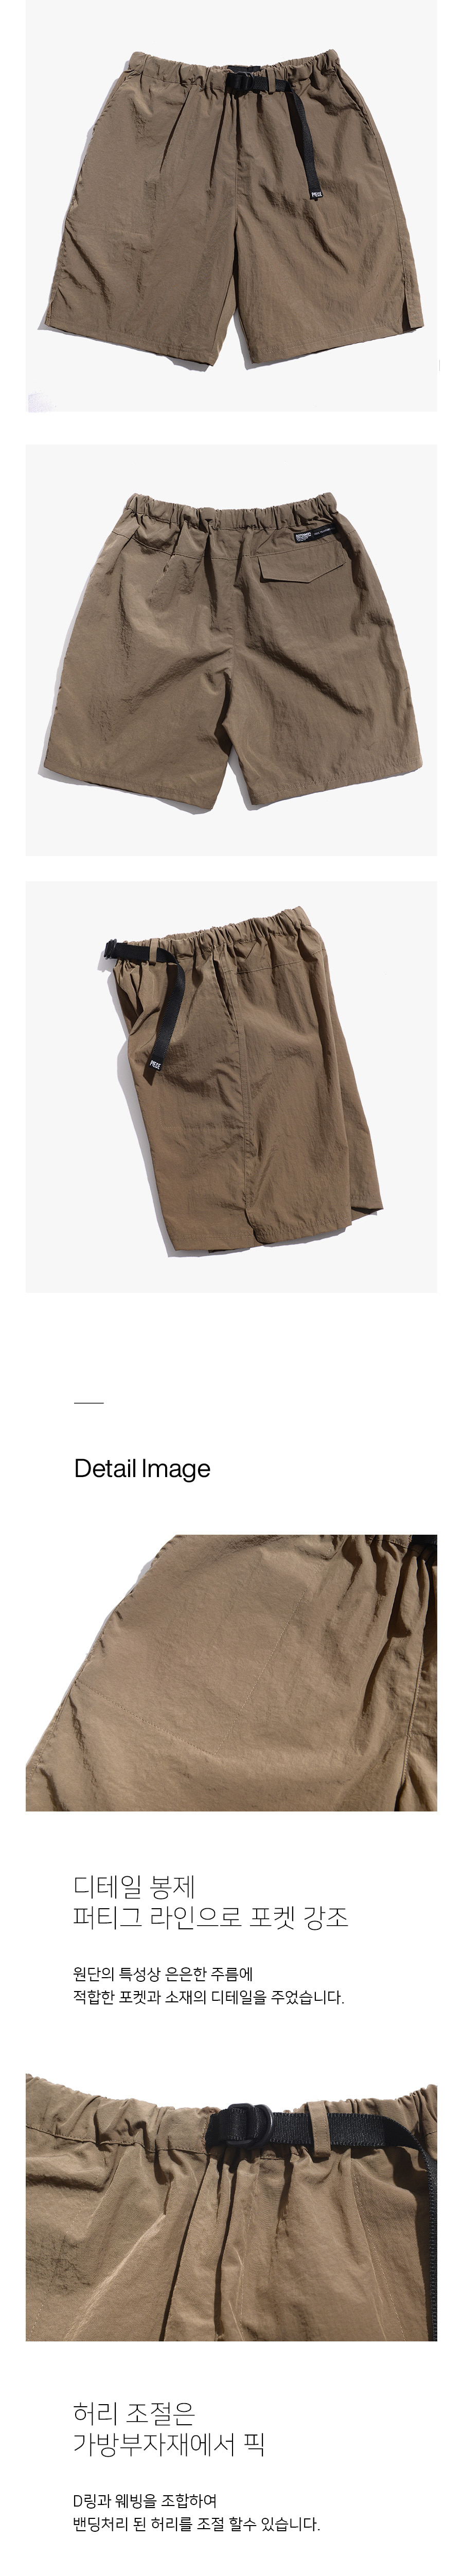 NYLON CREW SHORTS SET (KHAKI OLIVE)